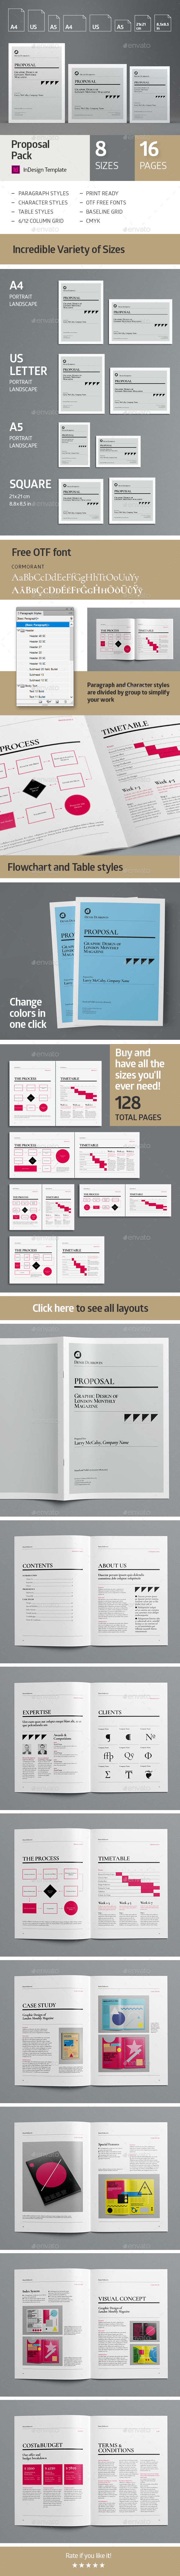 Multisize Proposal Pack - Proposals & Invoices Stationery